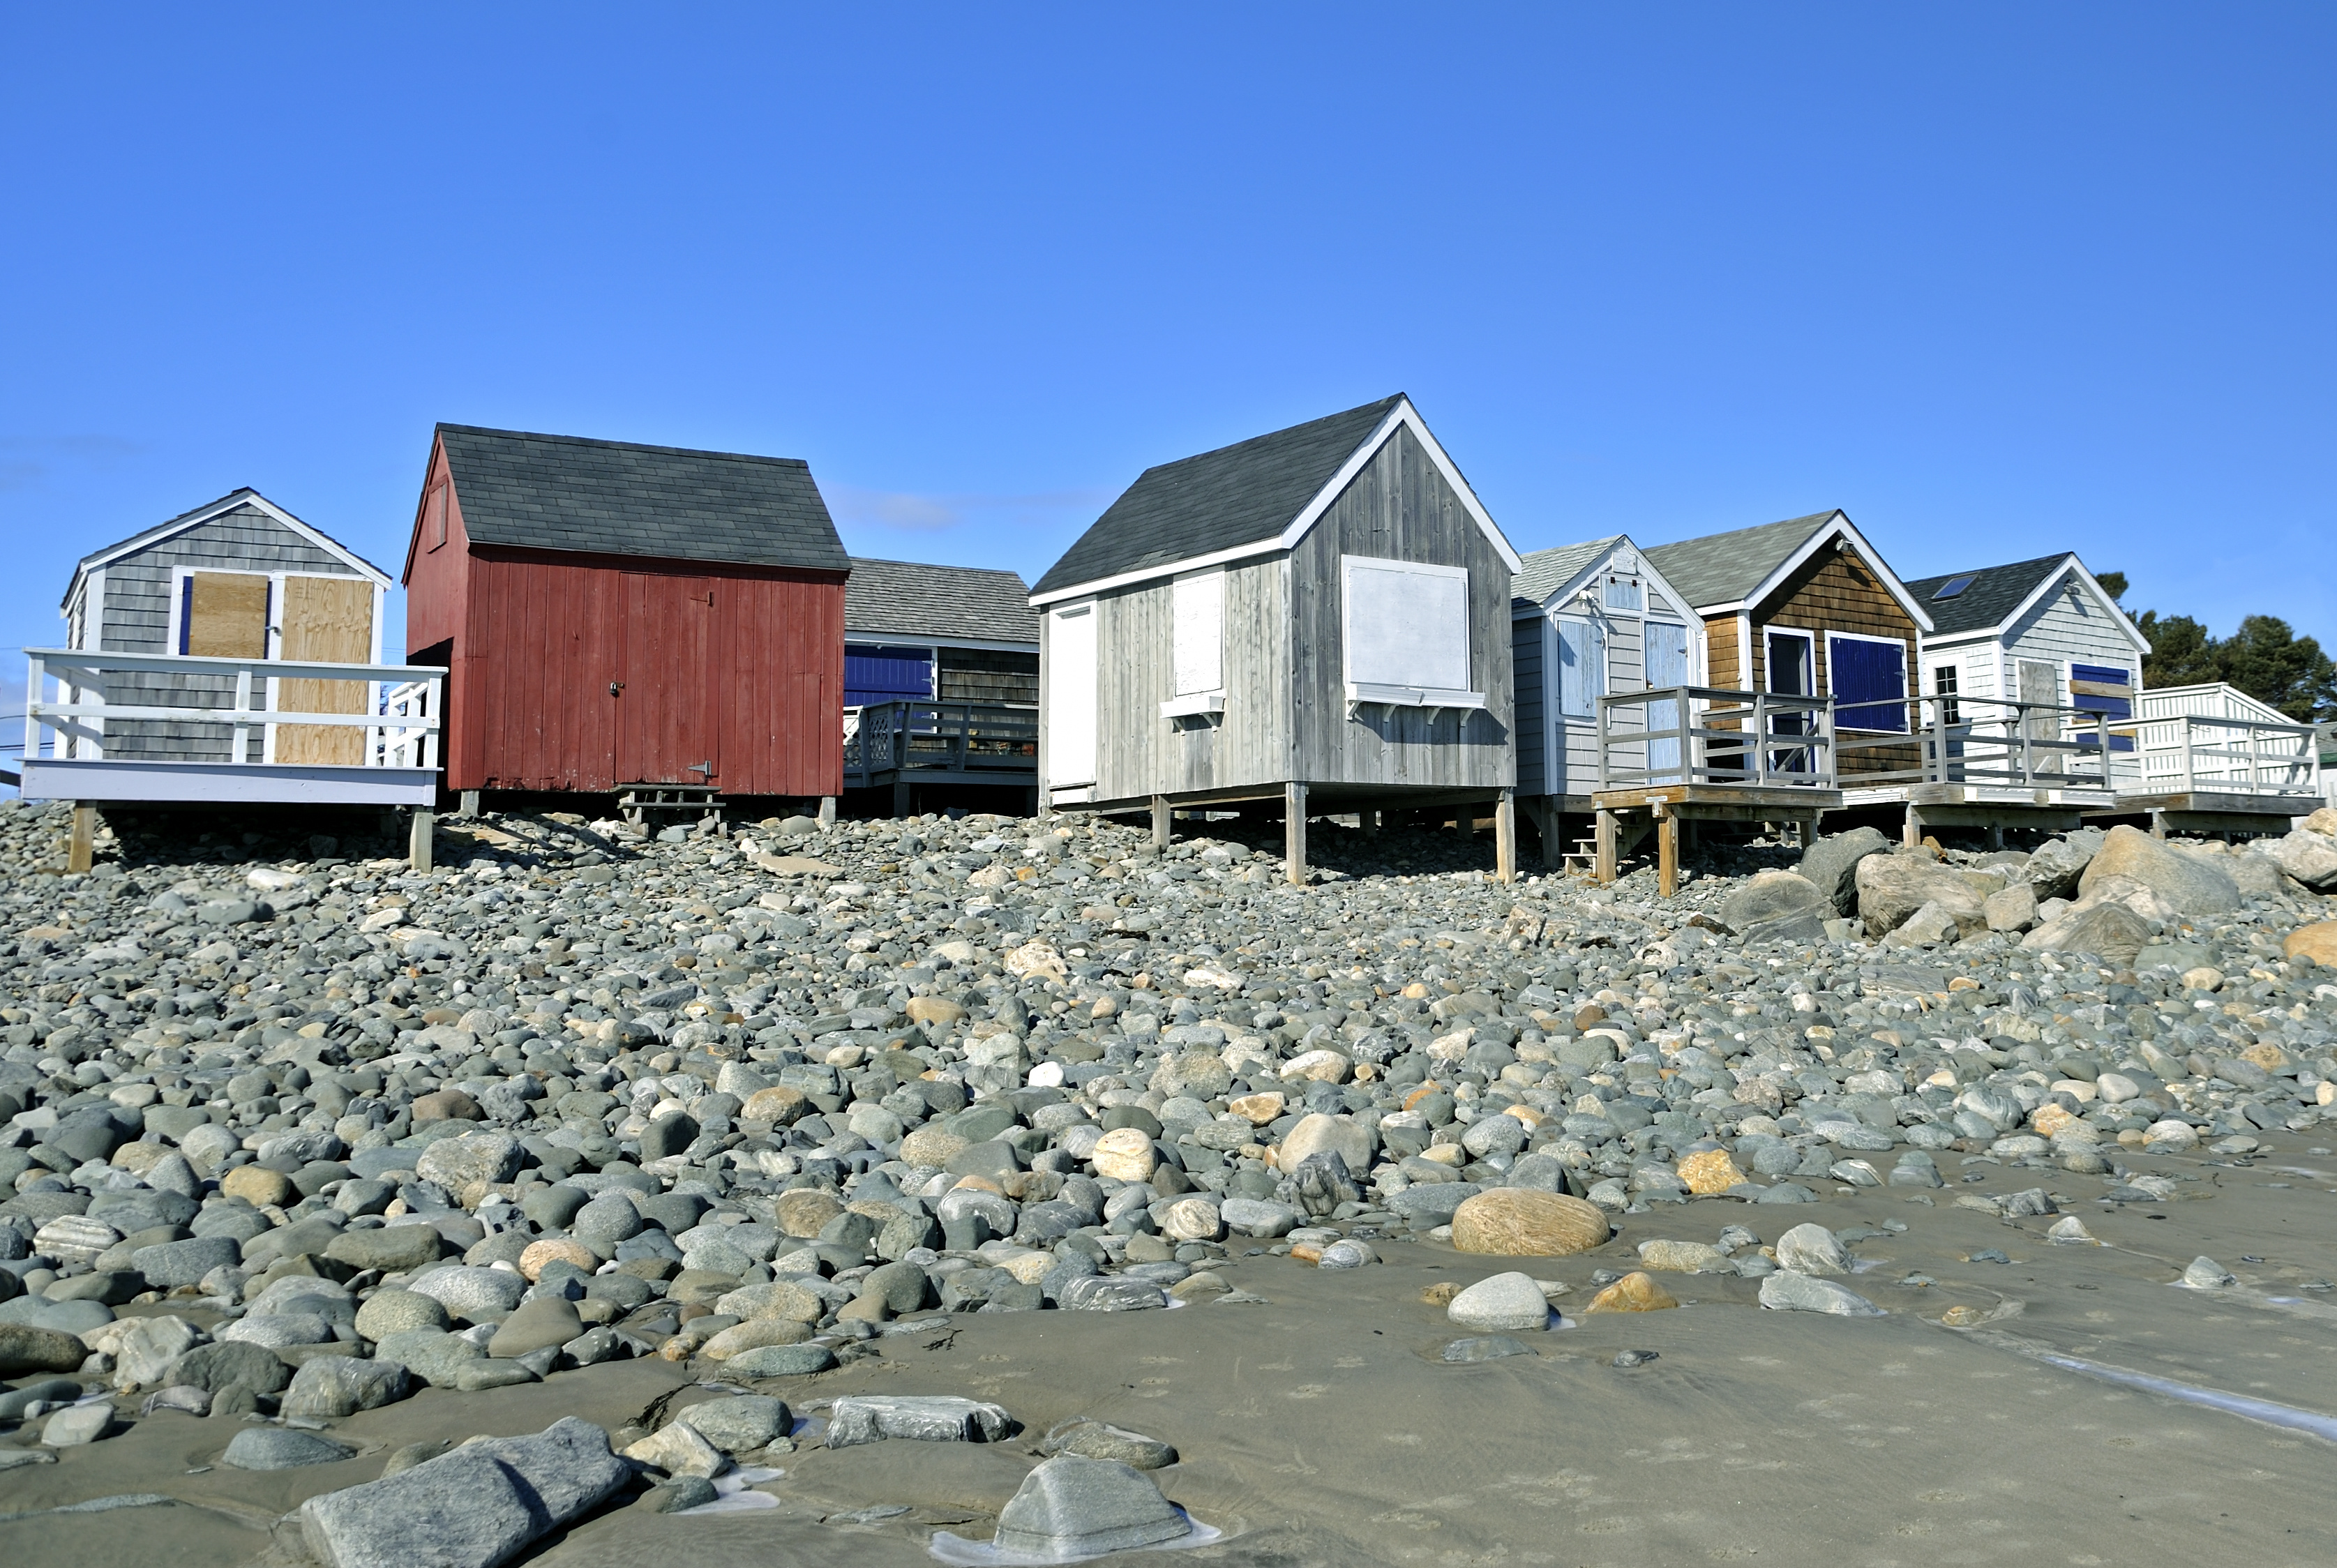 today and beach ramp cottages new rye beaches fun in portsmouth seaside yankee seafood nh hampshire travel